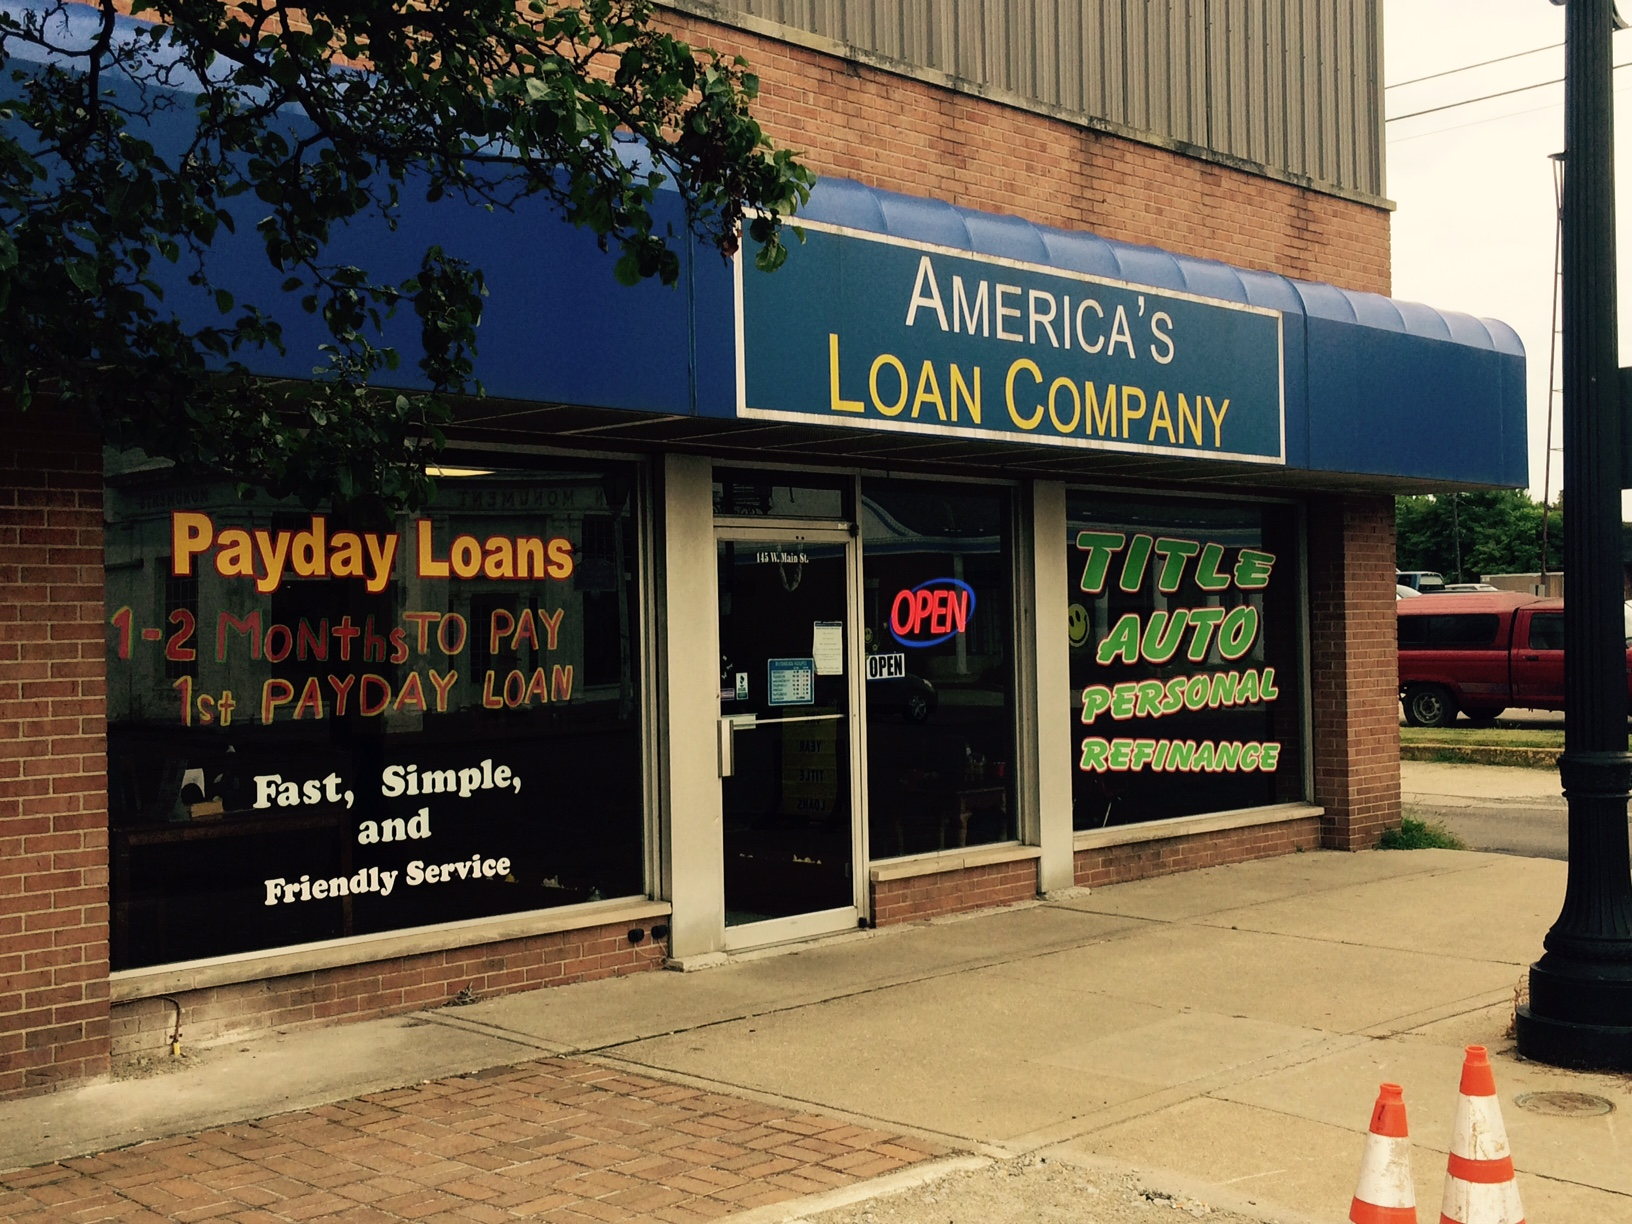 Payday loans sunset utah picture 8